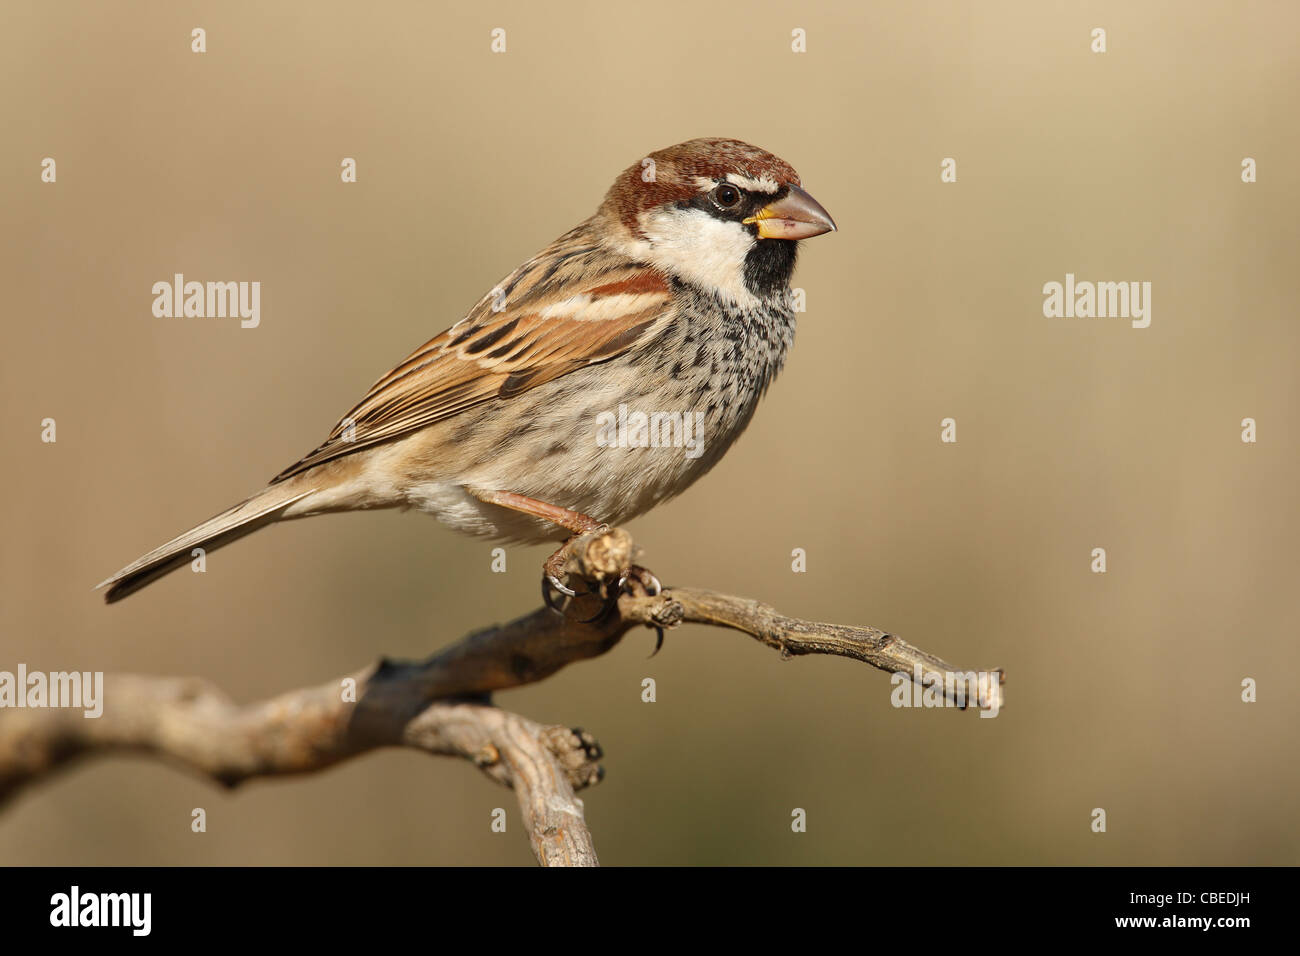 Spanish Sparrow (Passer hispaniolensis), male perched on a twig. - Stock Image